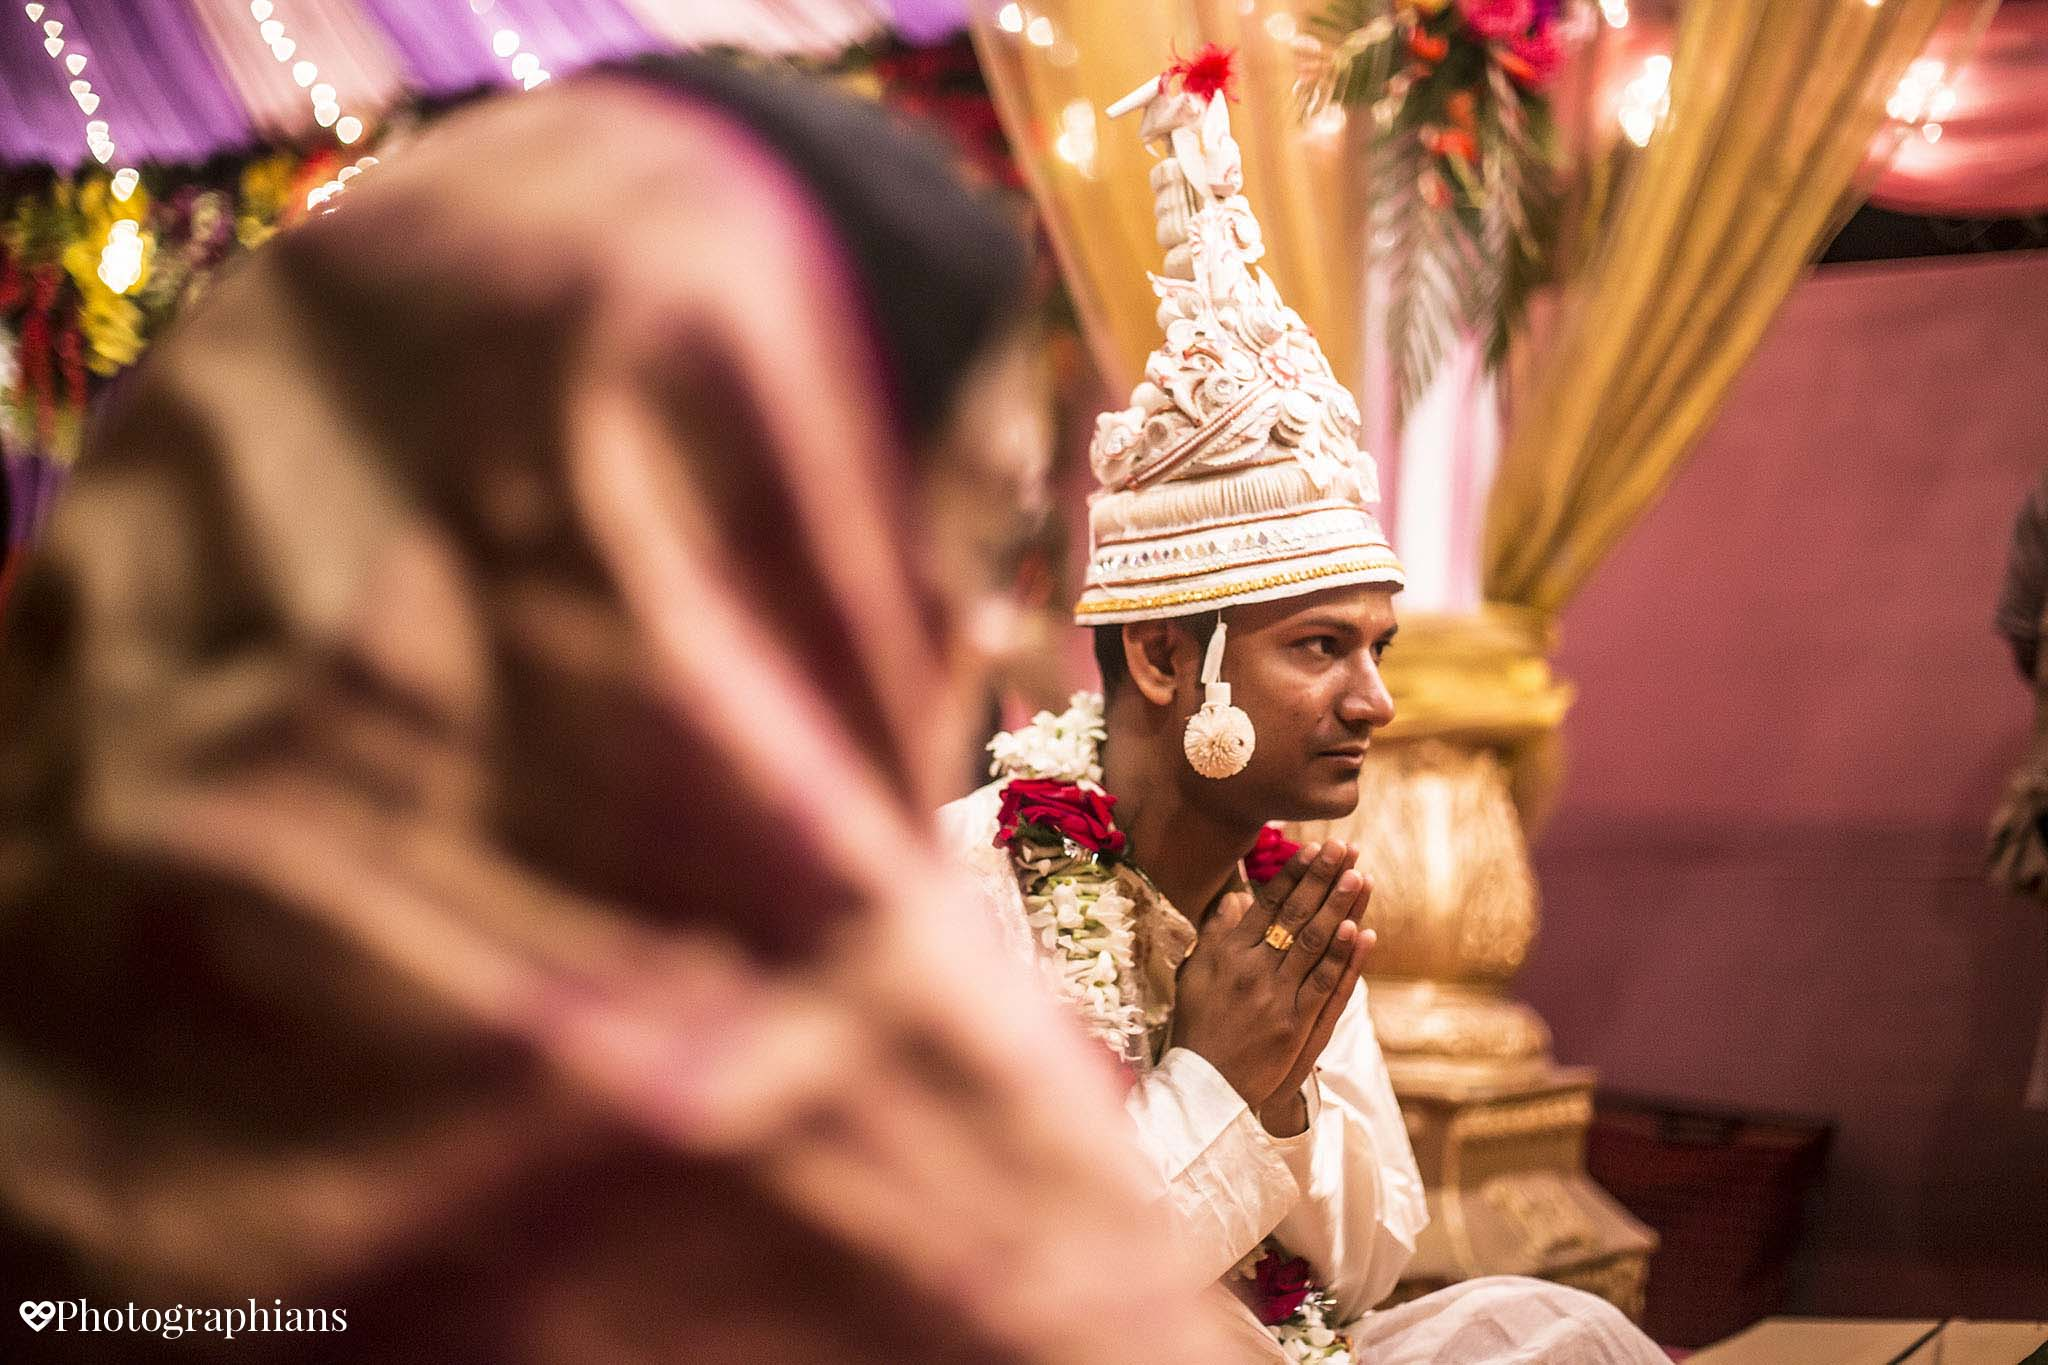 Photographians_Indian_Destination_Wedding_223